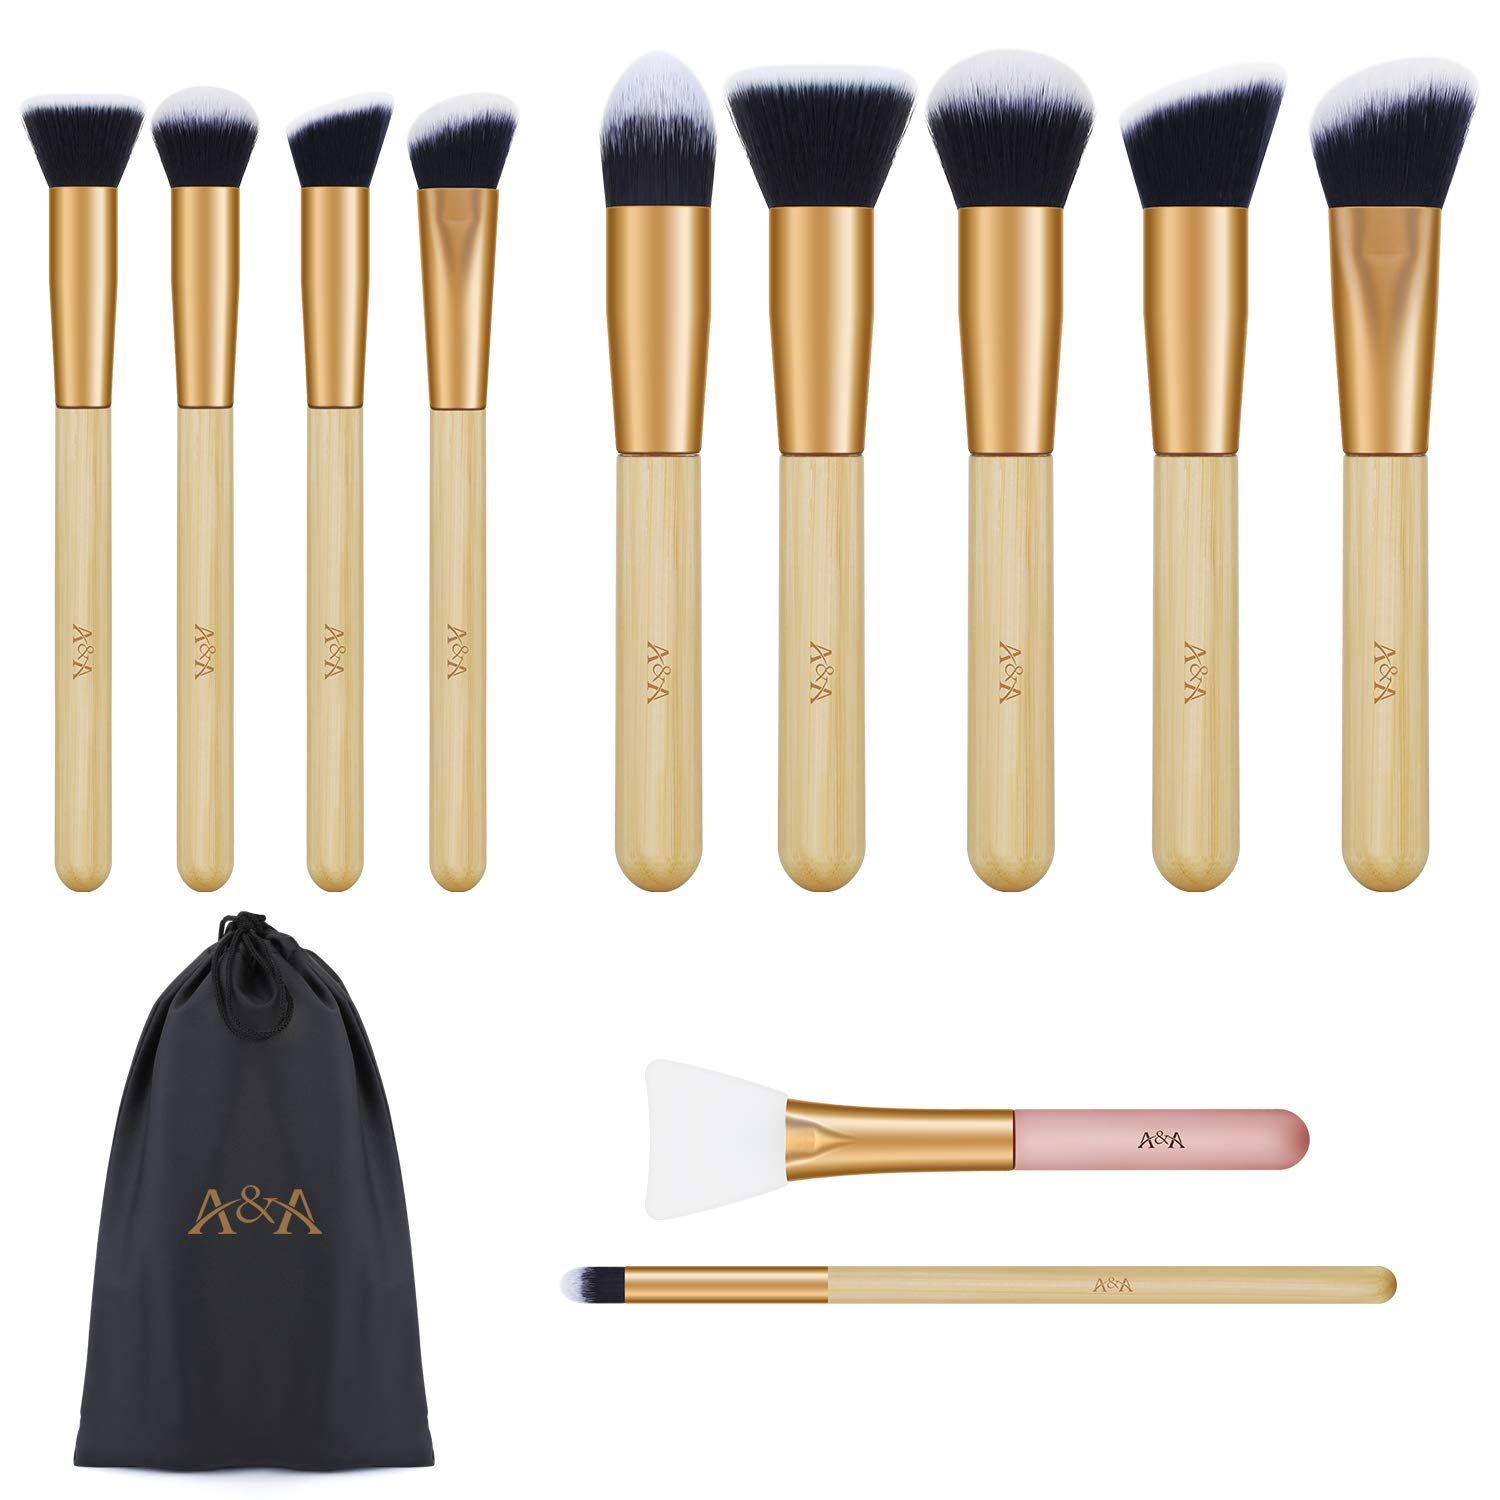 Makeup Brushes Set - 10 Pcs Professional Cosmetic Tools and 1 PCS Silicone Face Mask Brush are Made of Premium Synthetic Fiber and Bamboo Handle Rose Gold